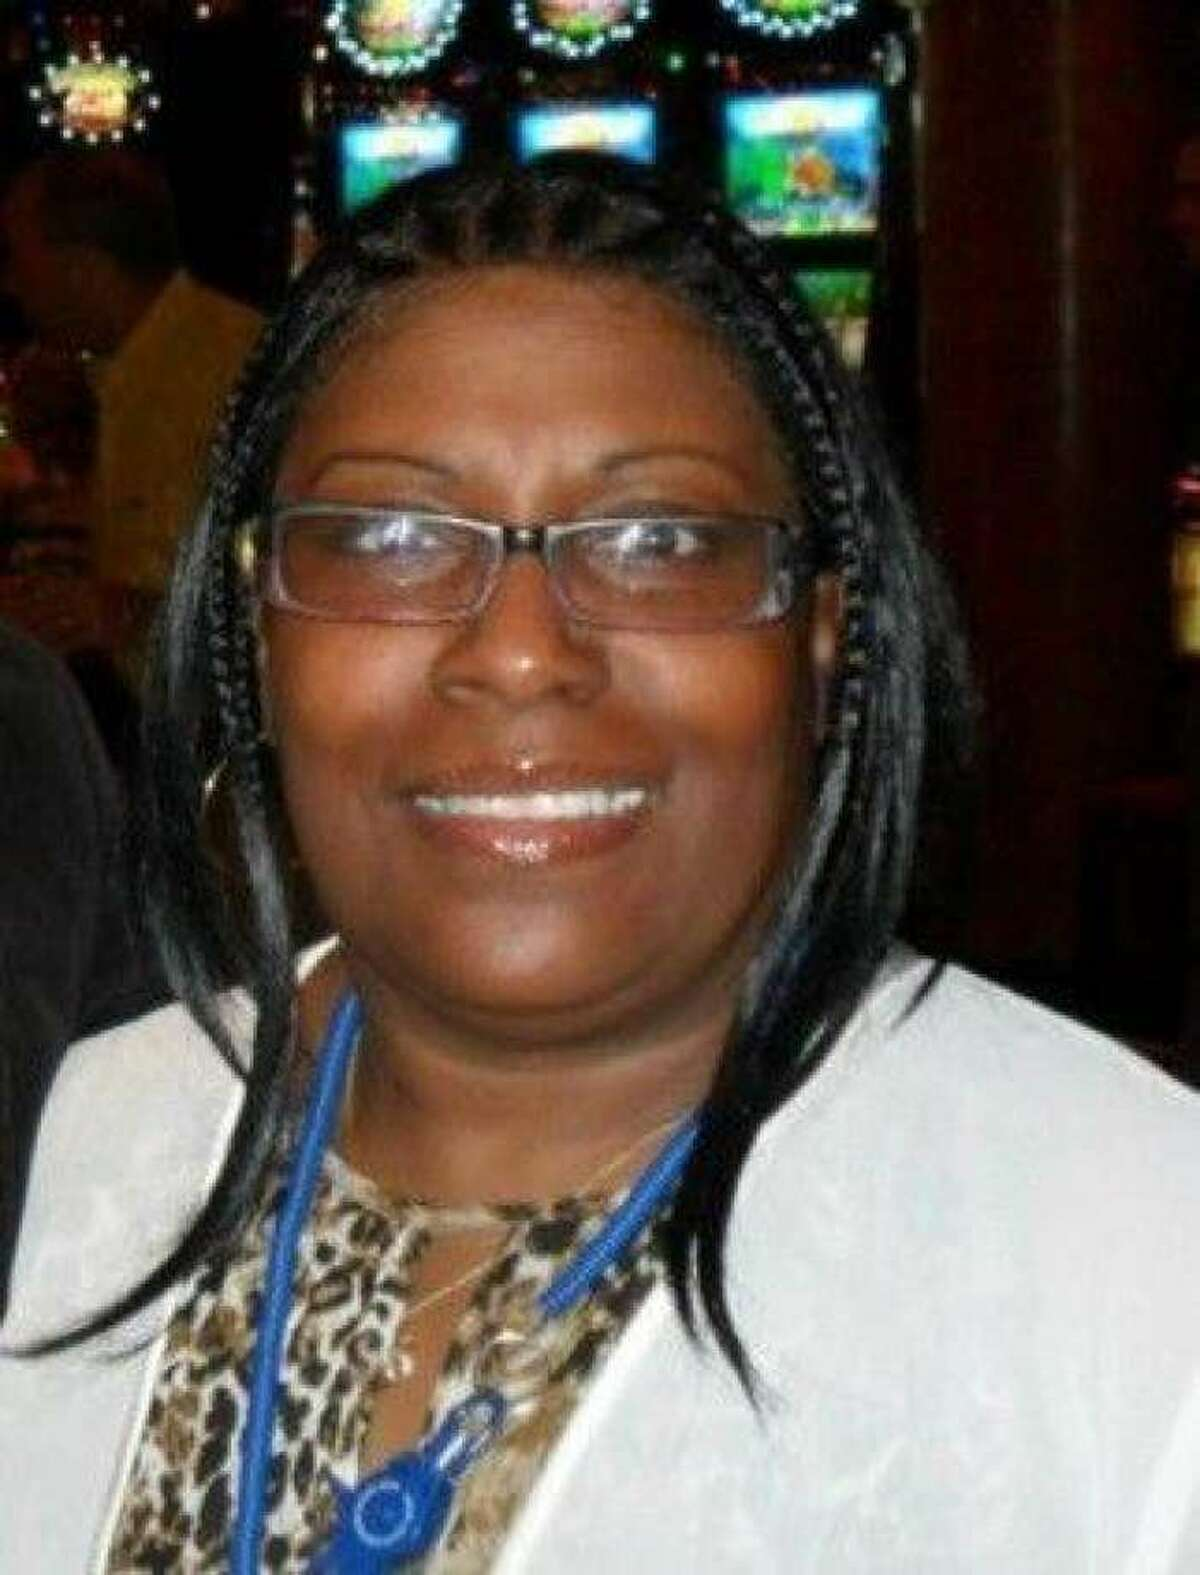 The Coldspring post office will be renamed for slain postal carrier Eddie Marie Youngblood on Friday, March 3. 9 a.m. The public is invited to attend.